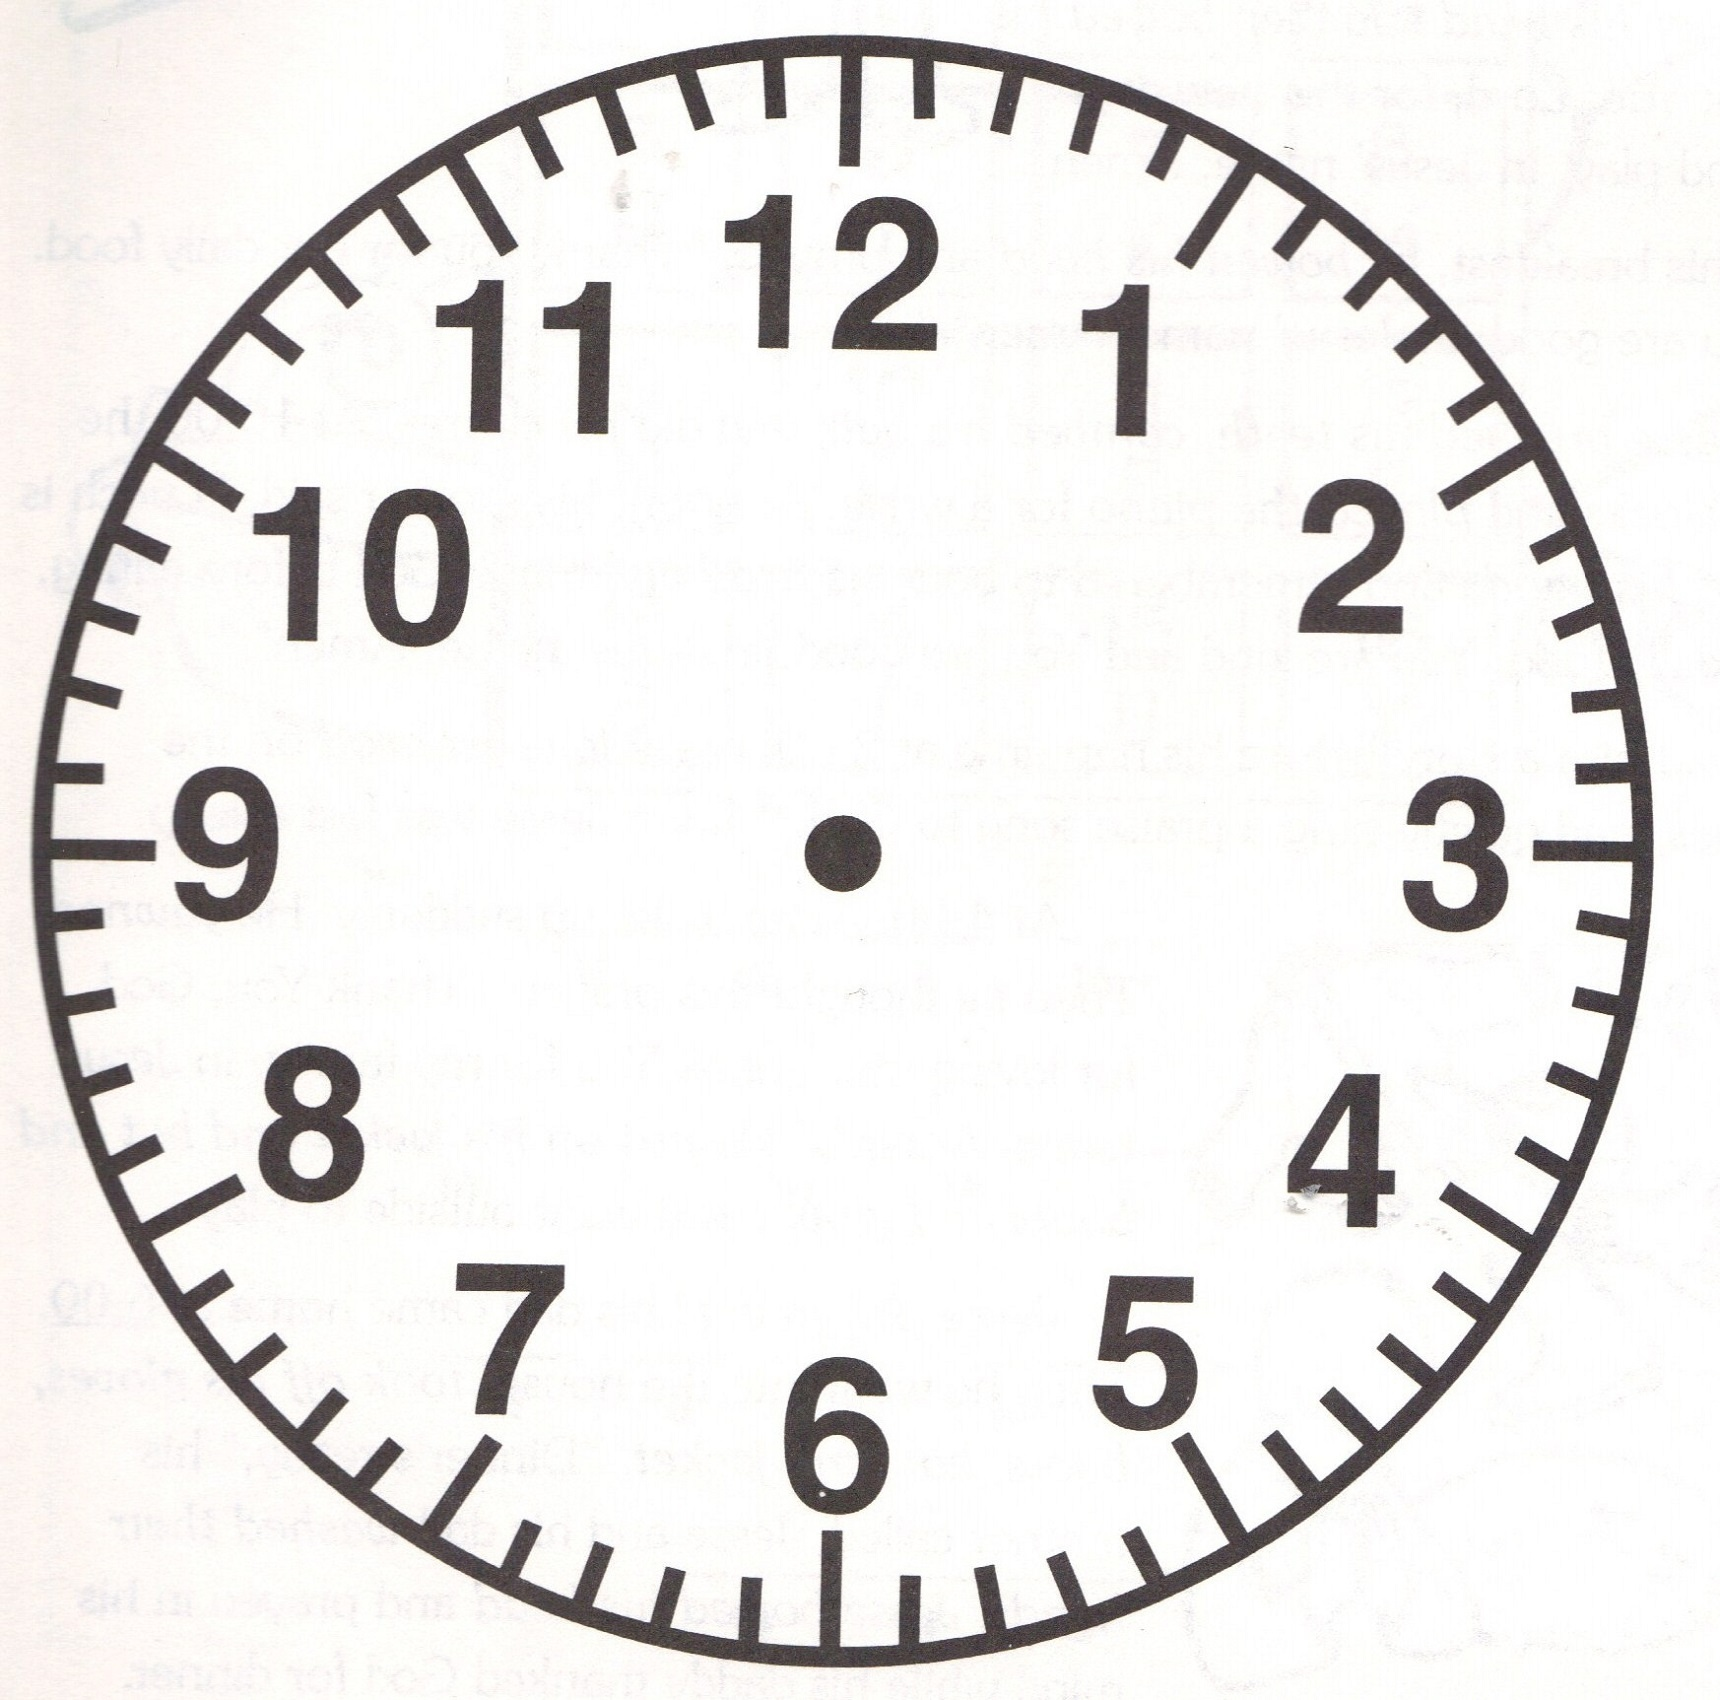 Free Clock Faces Printable | Activity Shelter - Free Printable Clock Faces